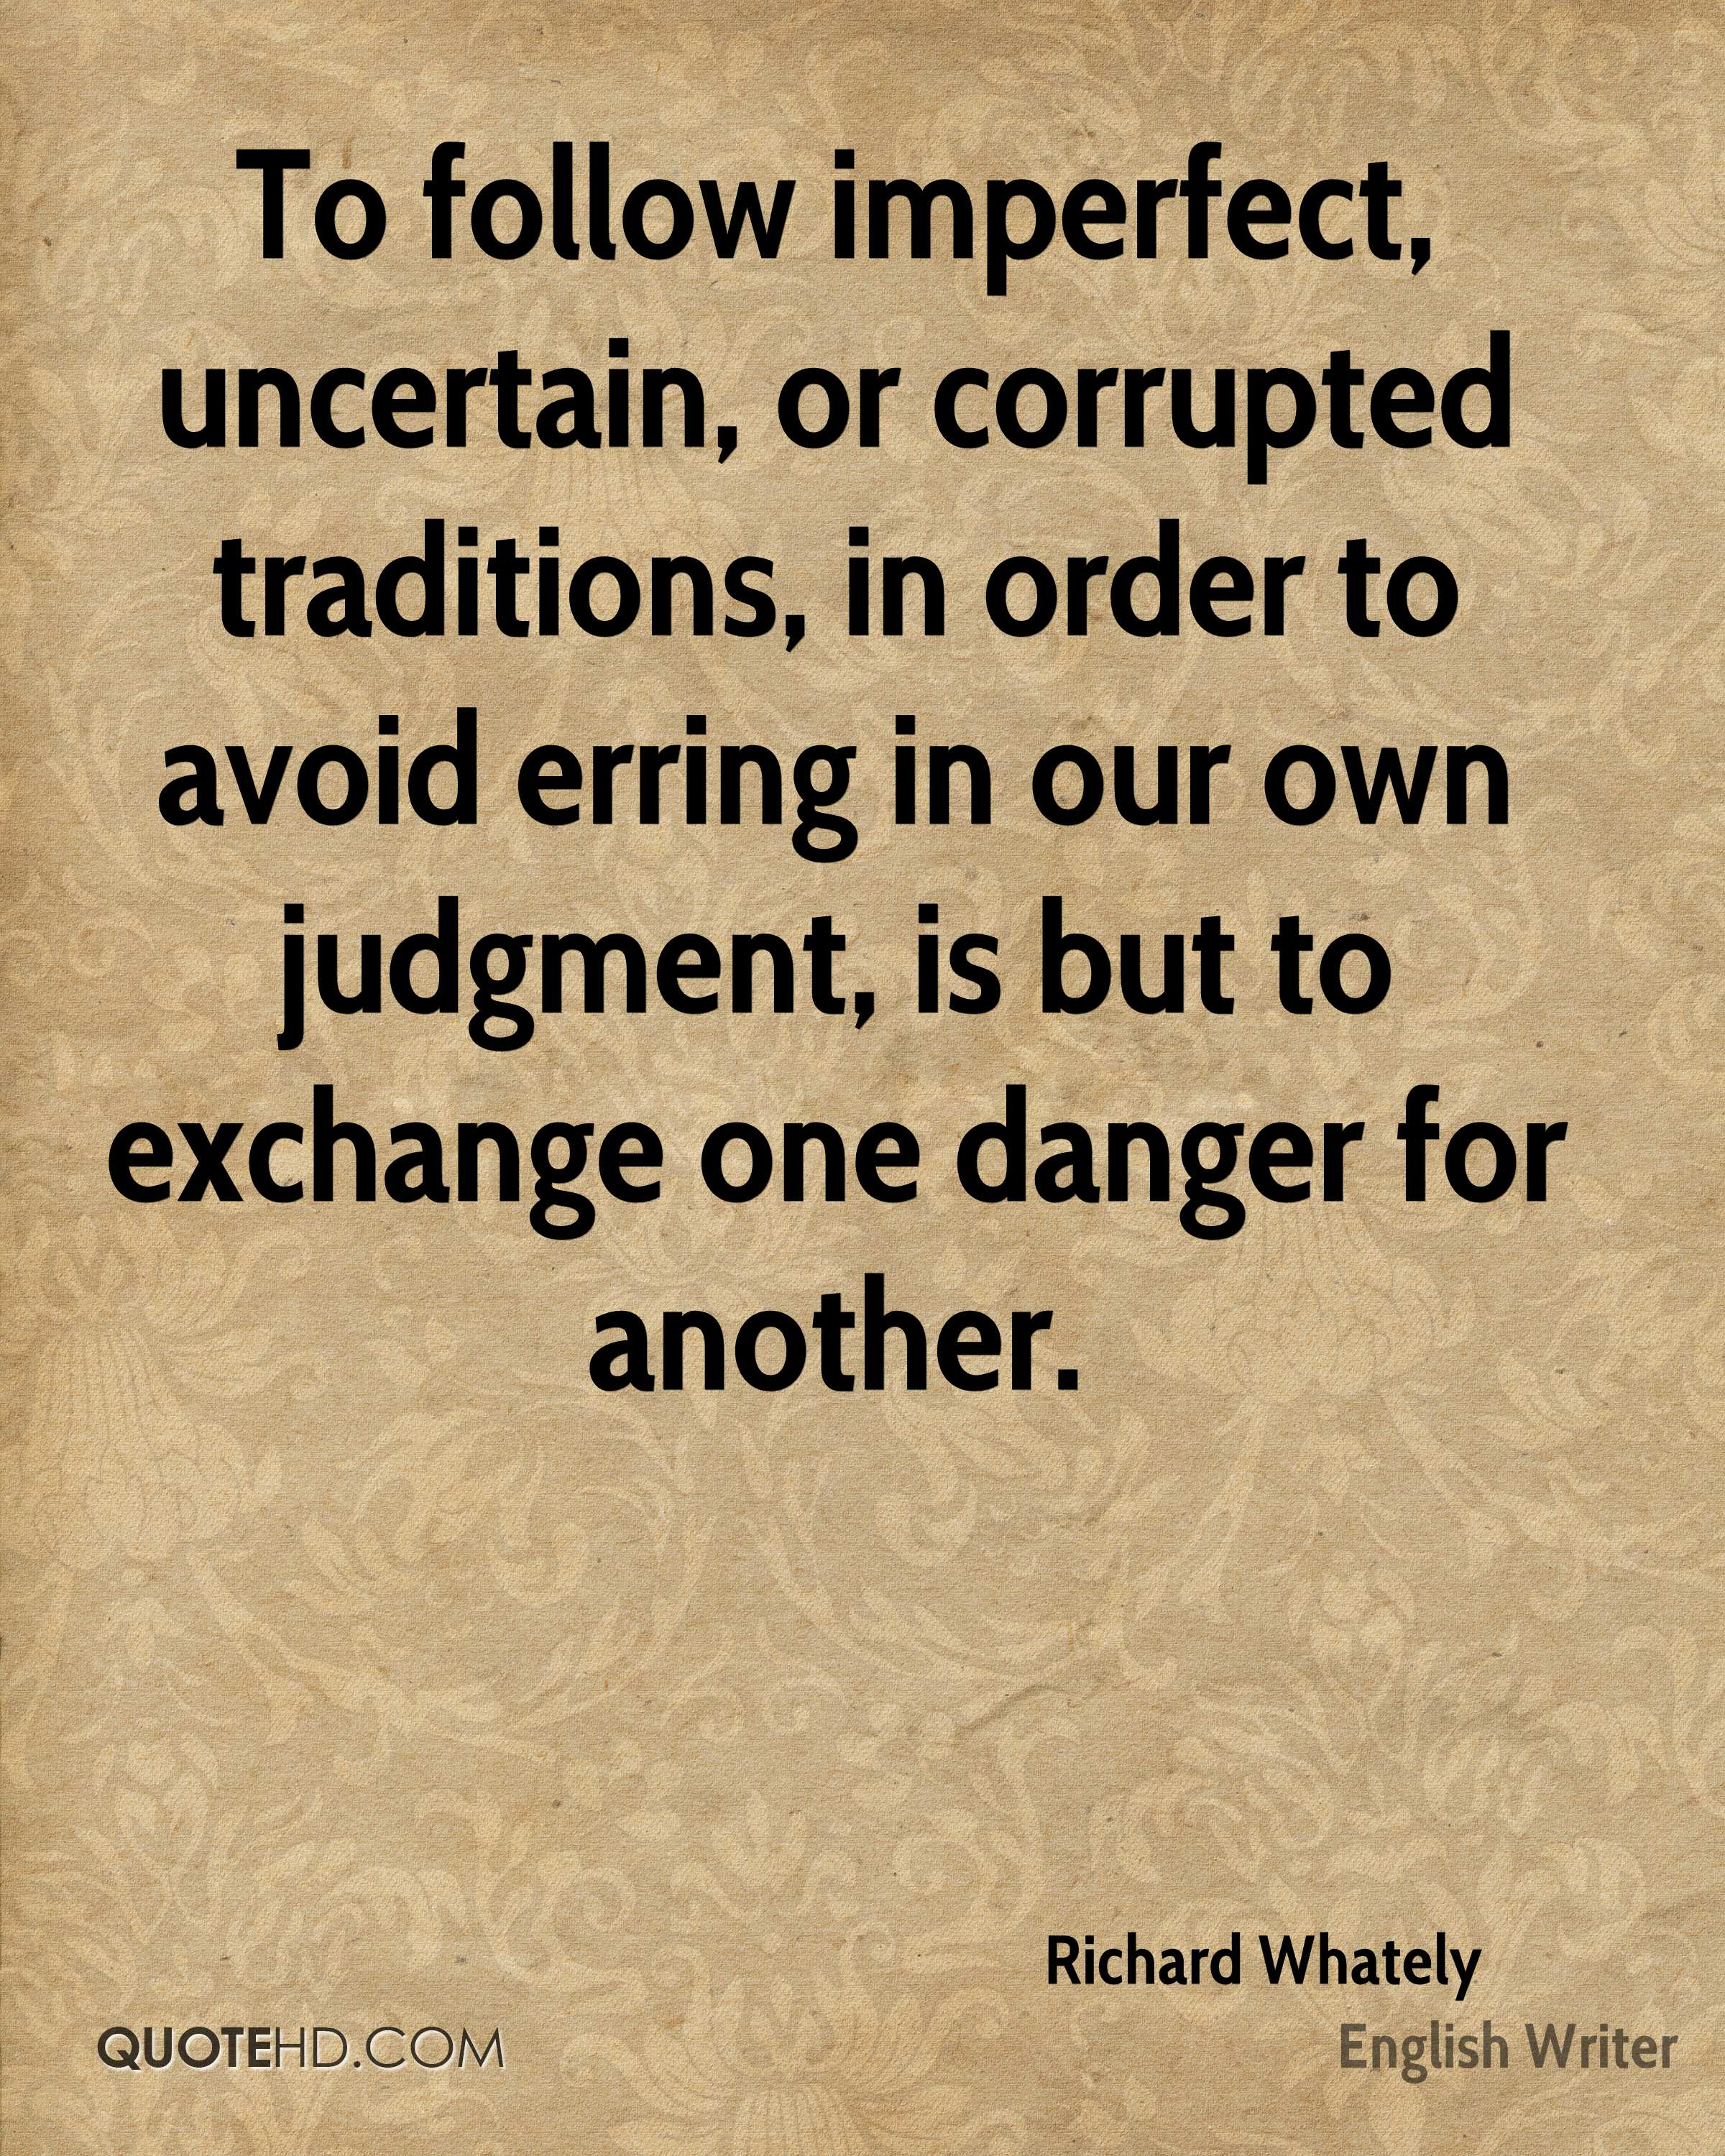 To follow imperfect, uncertain, or corrupted traditions, in order to avoid erring in our own judgment, is but to exchange one danger for another.